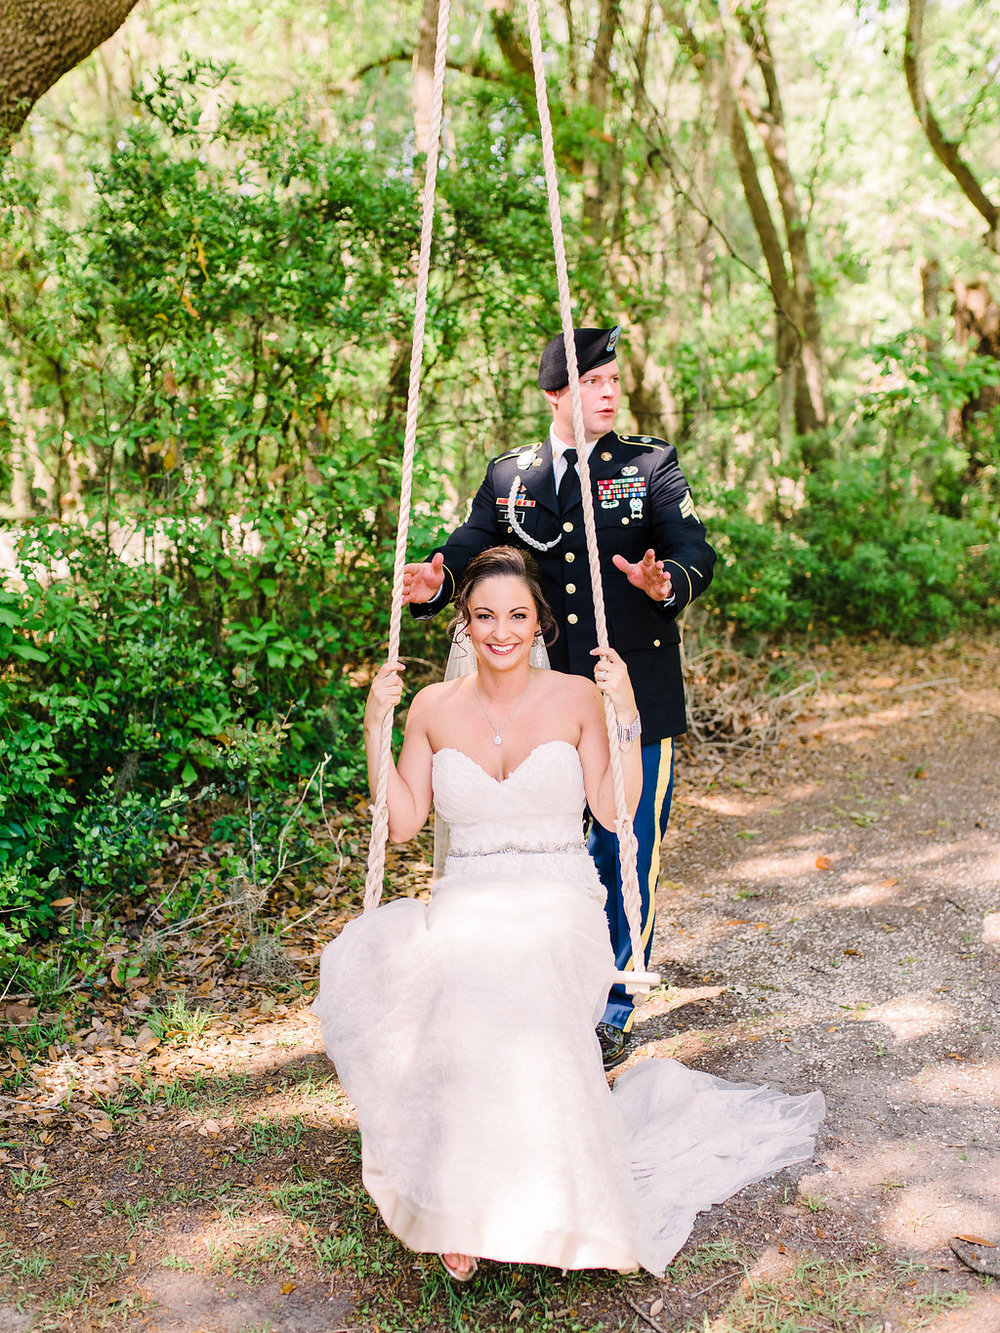 ivory-and-beau-bridal-boutique-lipski-surprise-wedding-5d-photography-military-wedding-savannah-savannah-military-bride-surprise-wedding-13.jpg